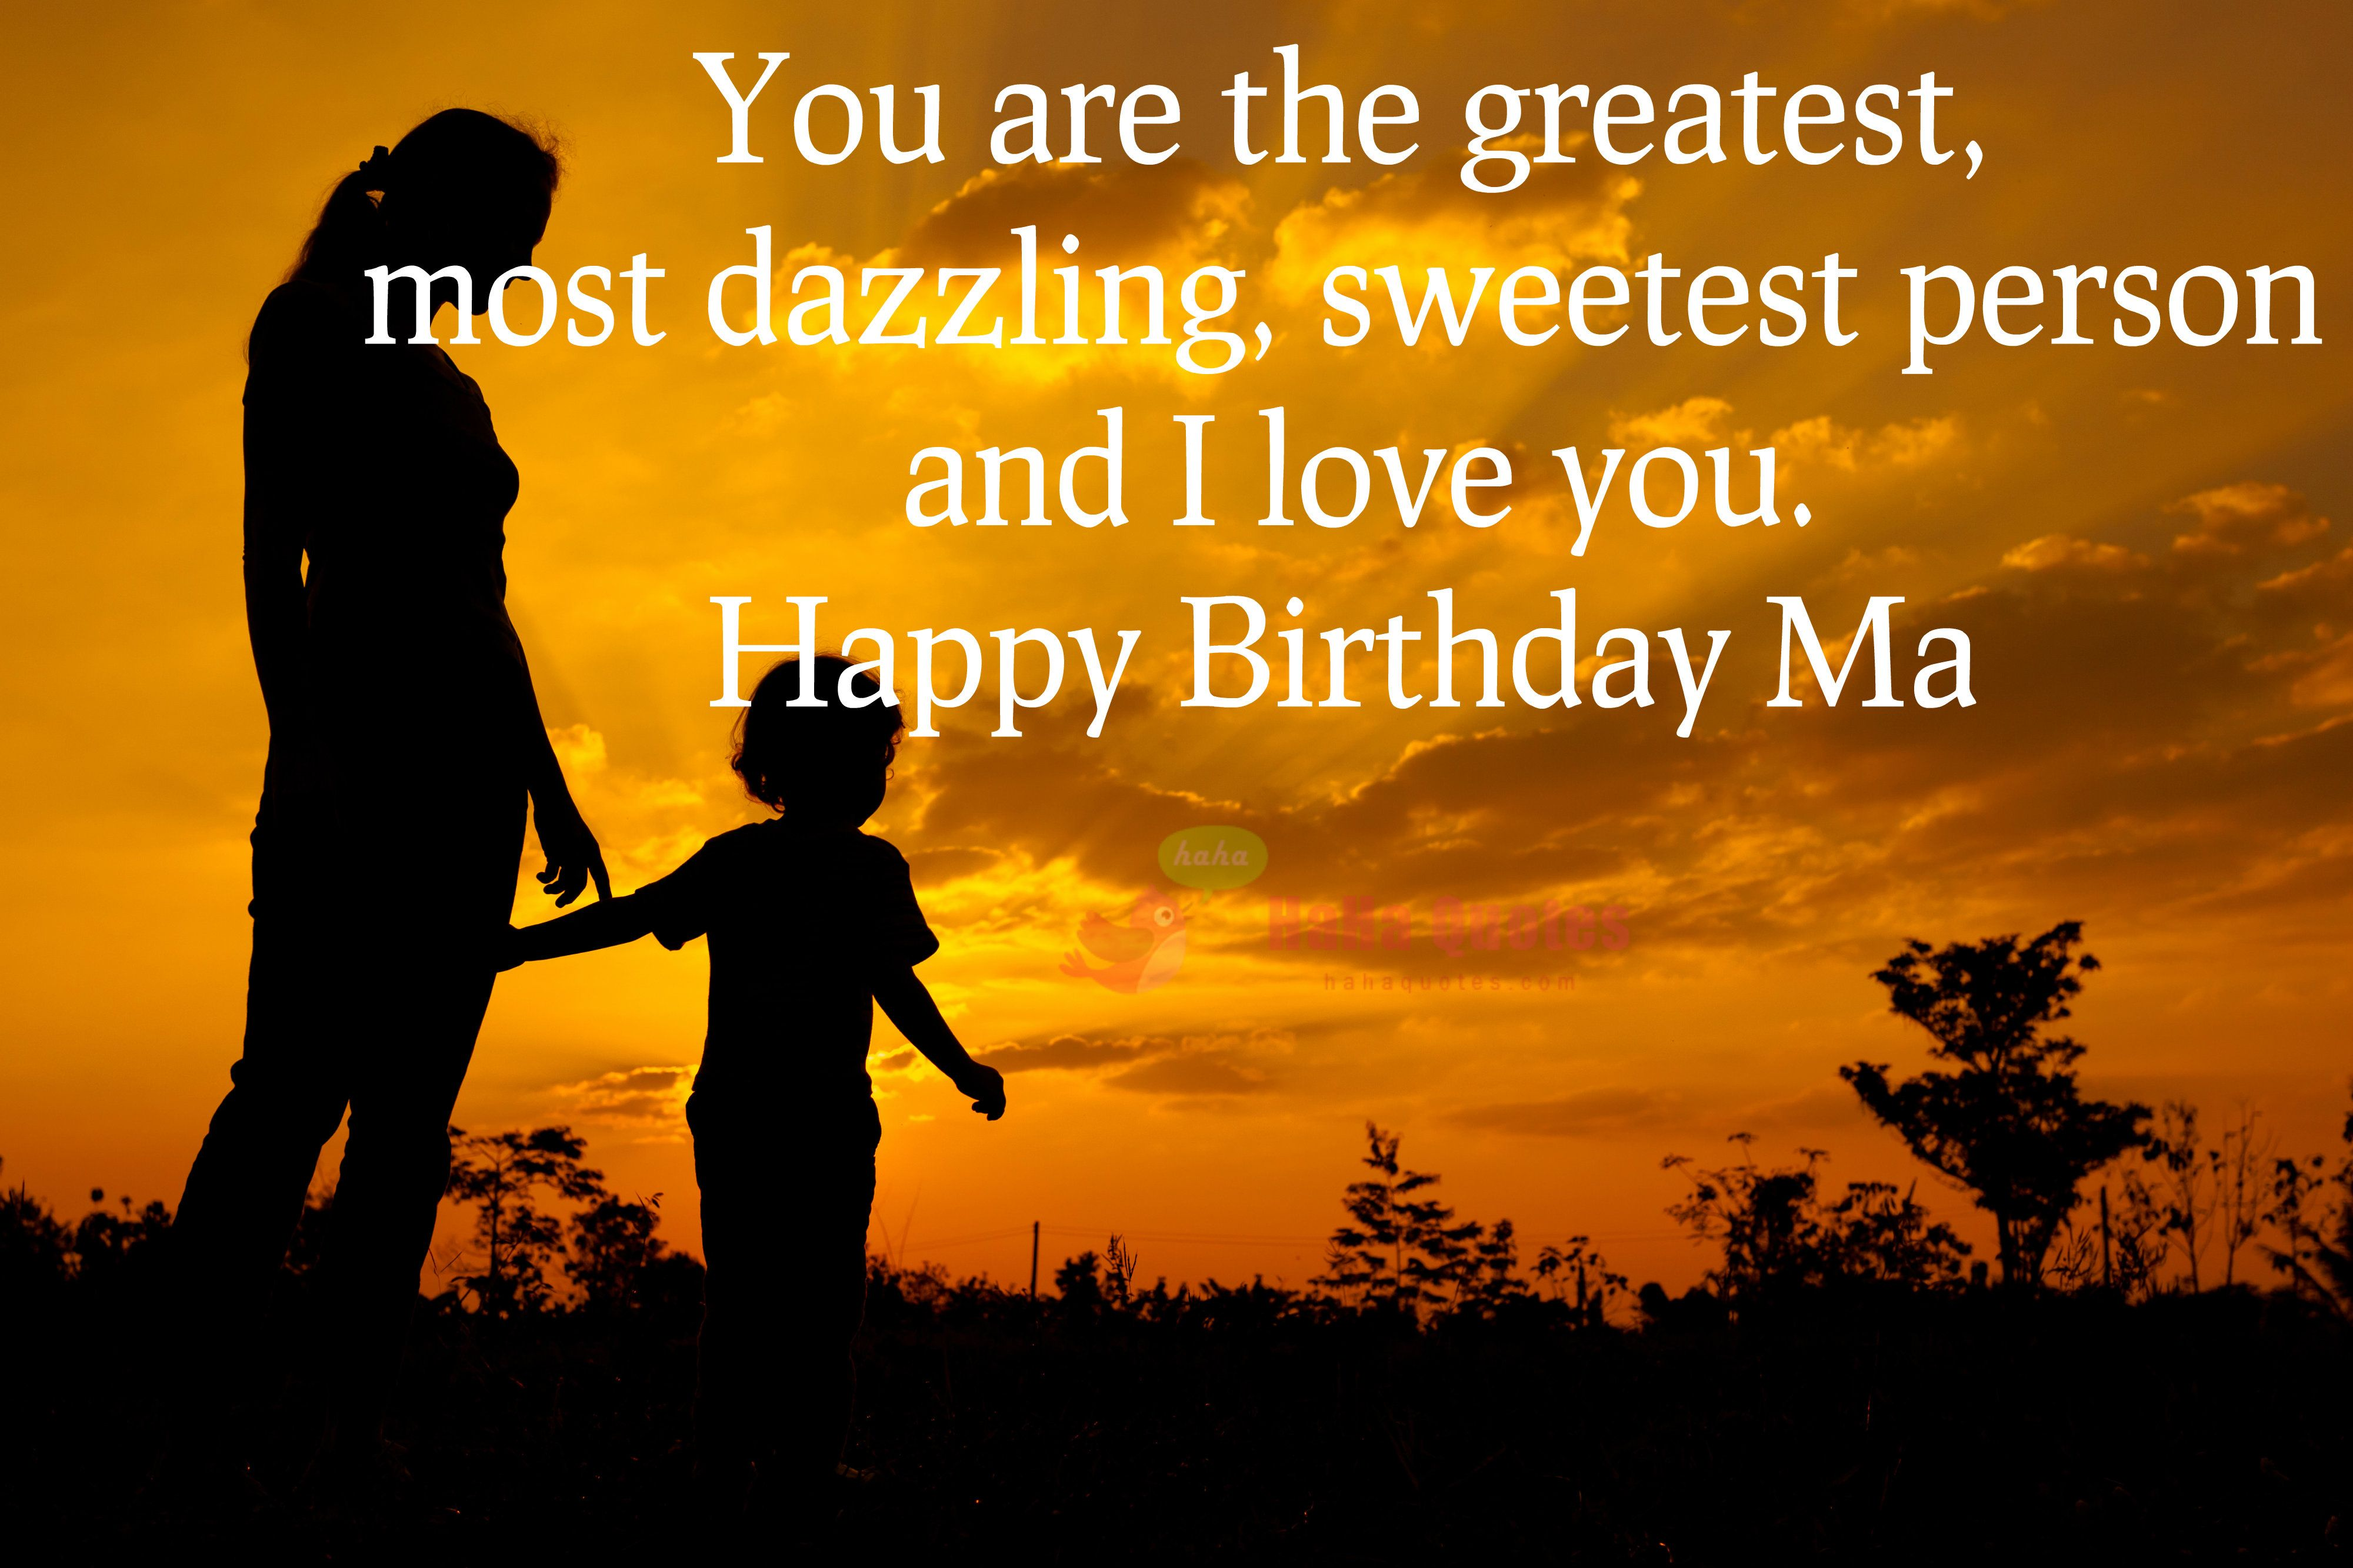 Happy birthday wishes for son from mother atletischsport happy birthday wishes for son from mother m4hsunfo